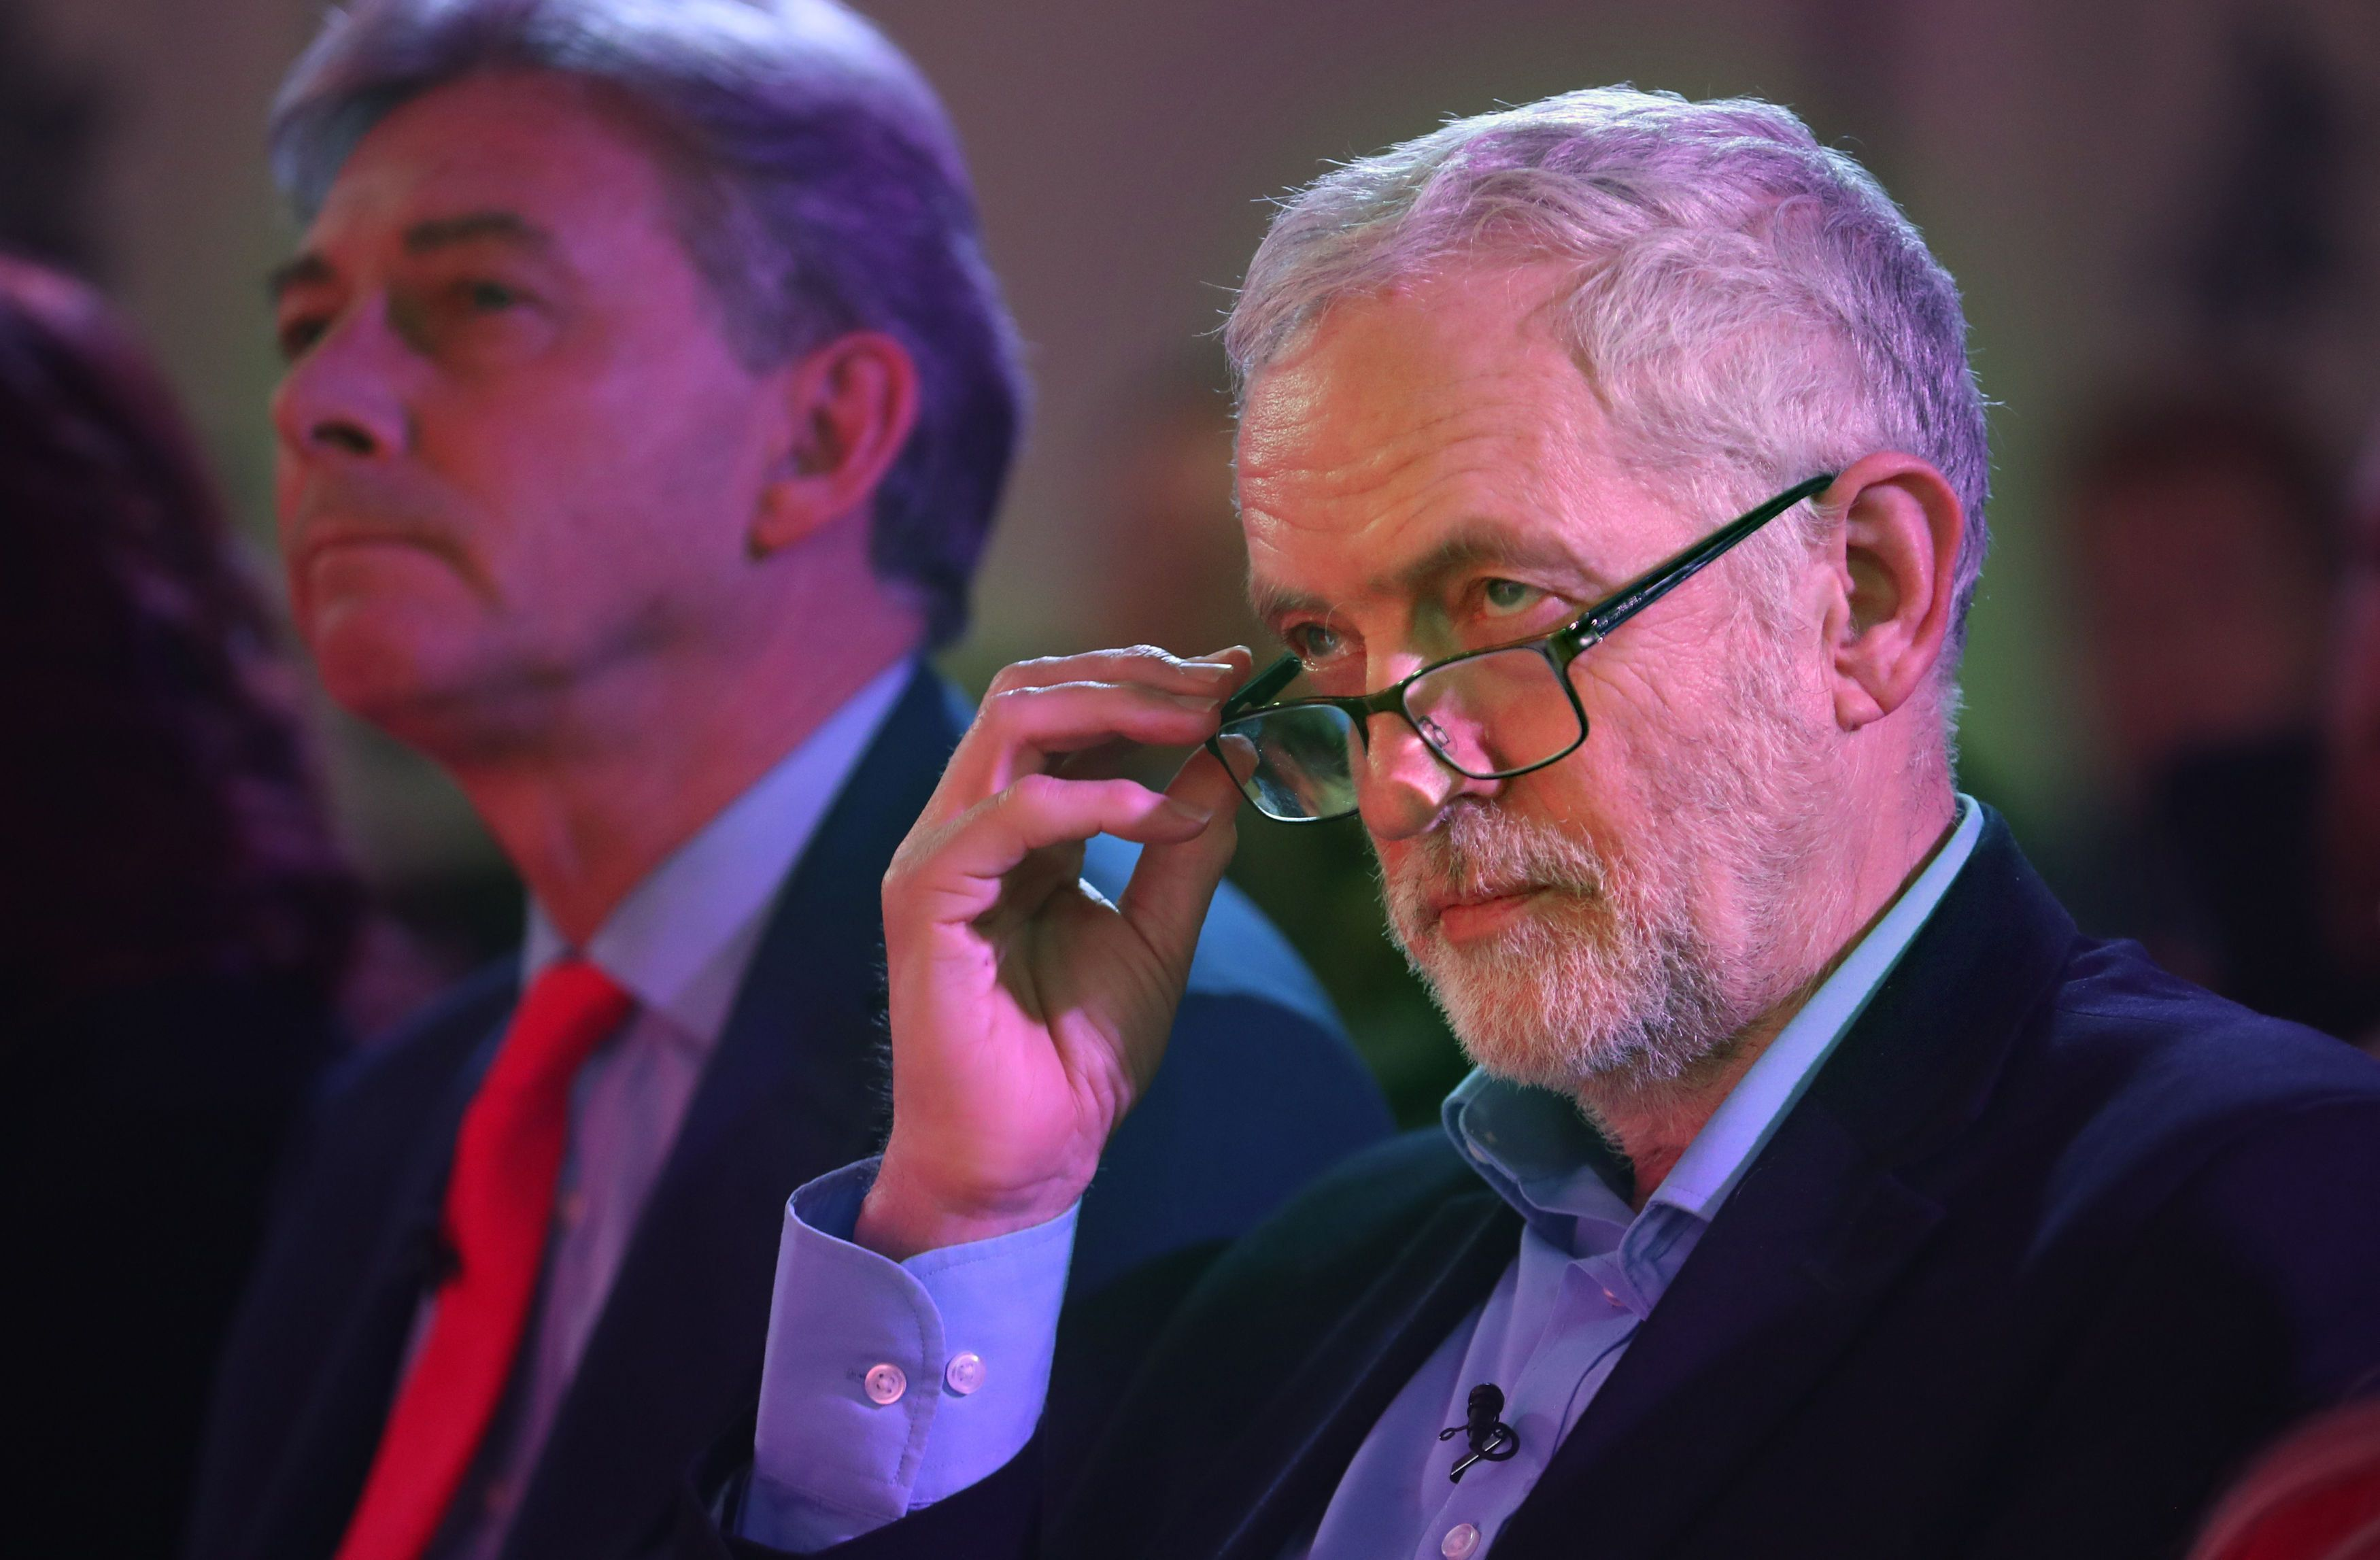 Labour Response To Facebook Anti-Semitism 'Totally Inadequate', Campaigners